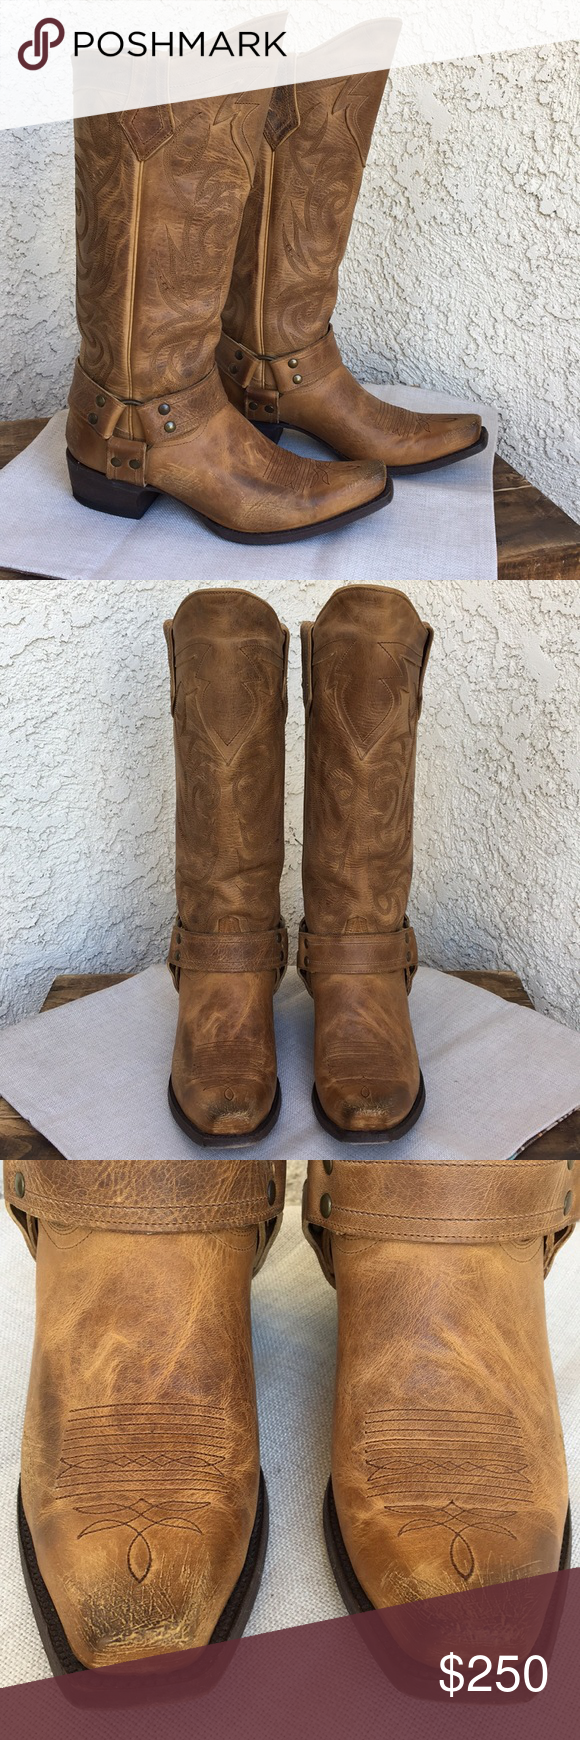 Old Gringo Lanachaz Leather Harness Boots 8.5 These are pair of Old Gringo Lanac…